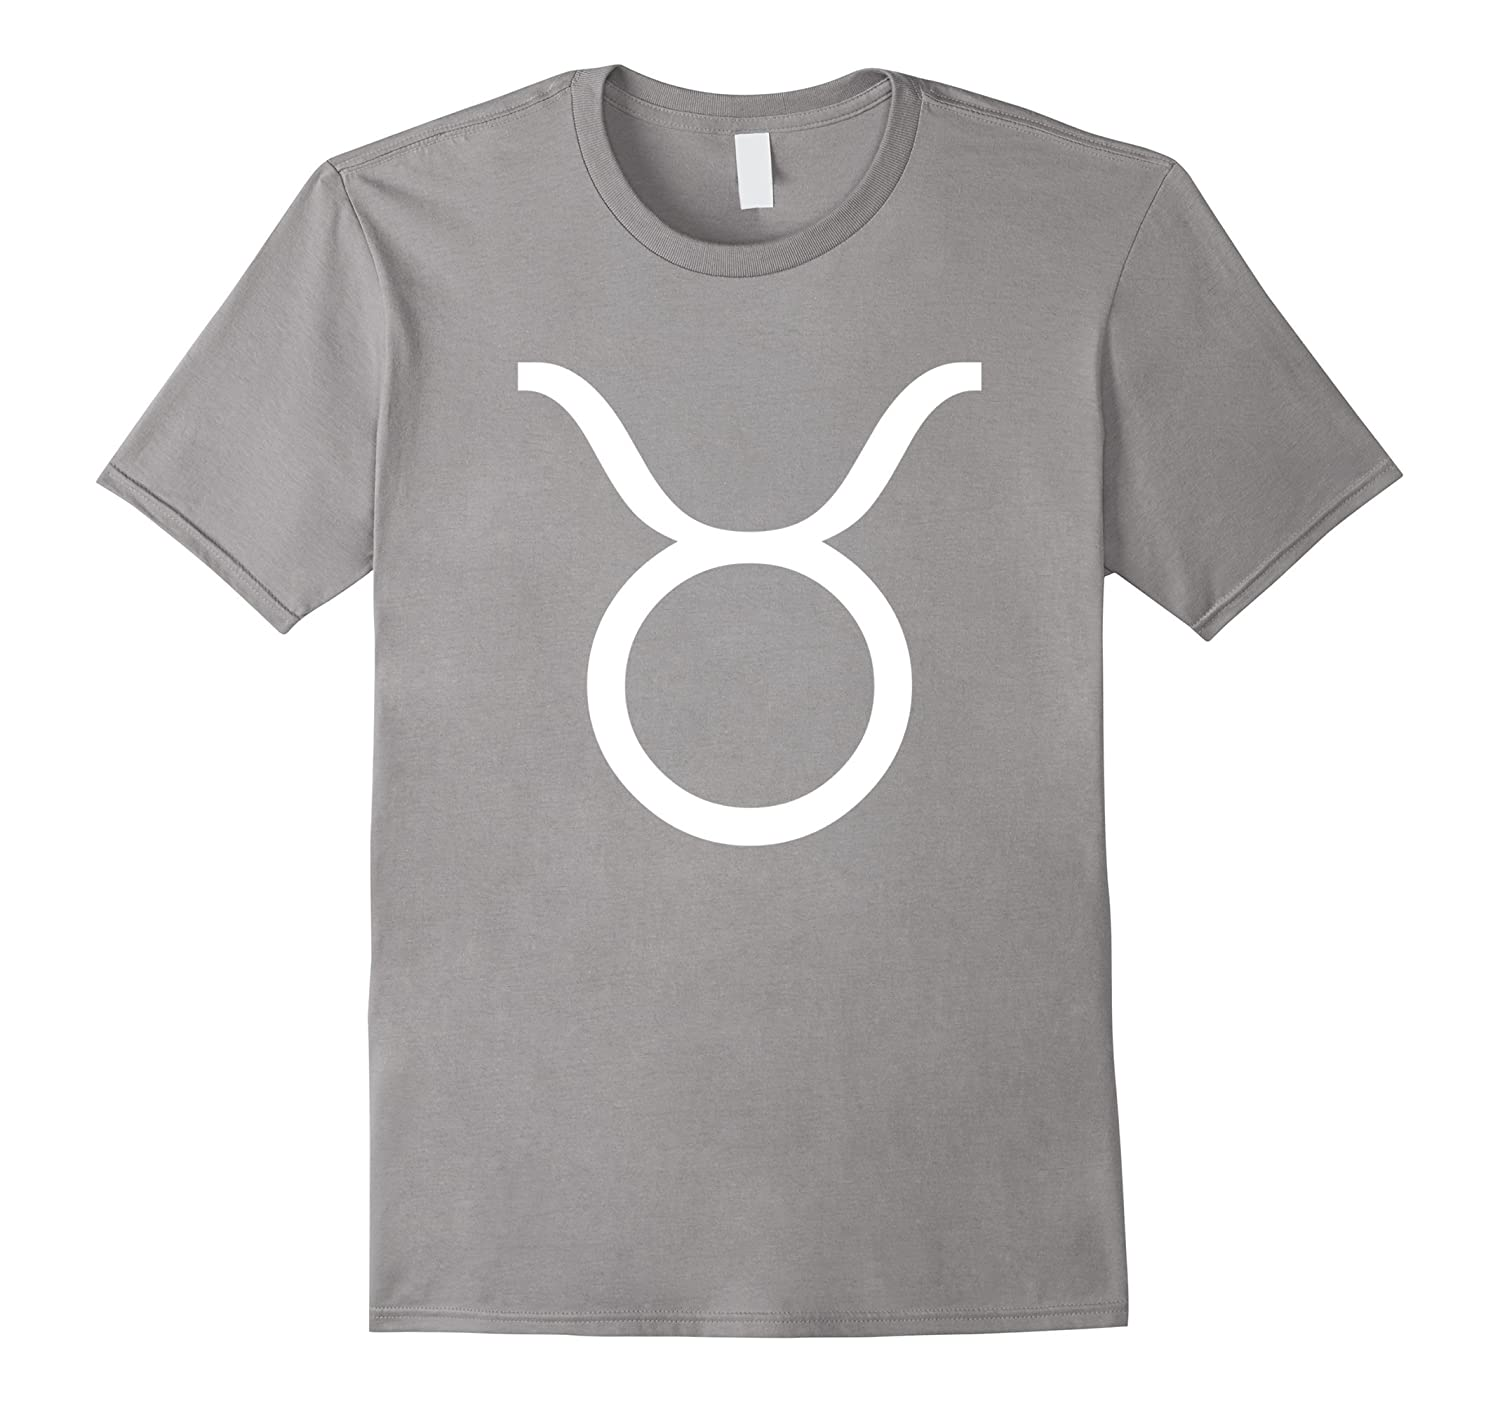 Taurus Symbol T-Shirt Zodiac Horoscope April May Birthday-FL